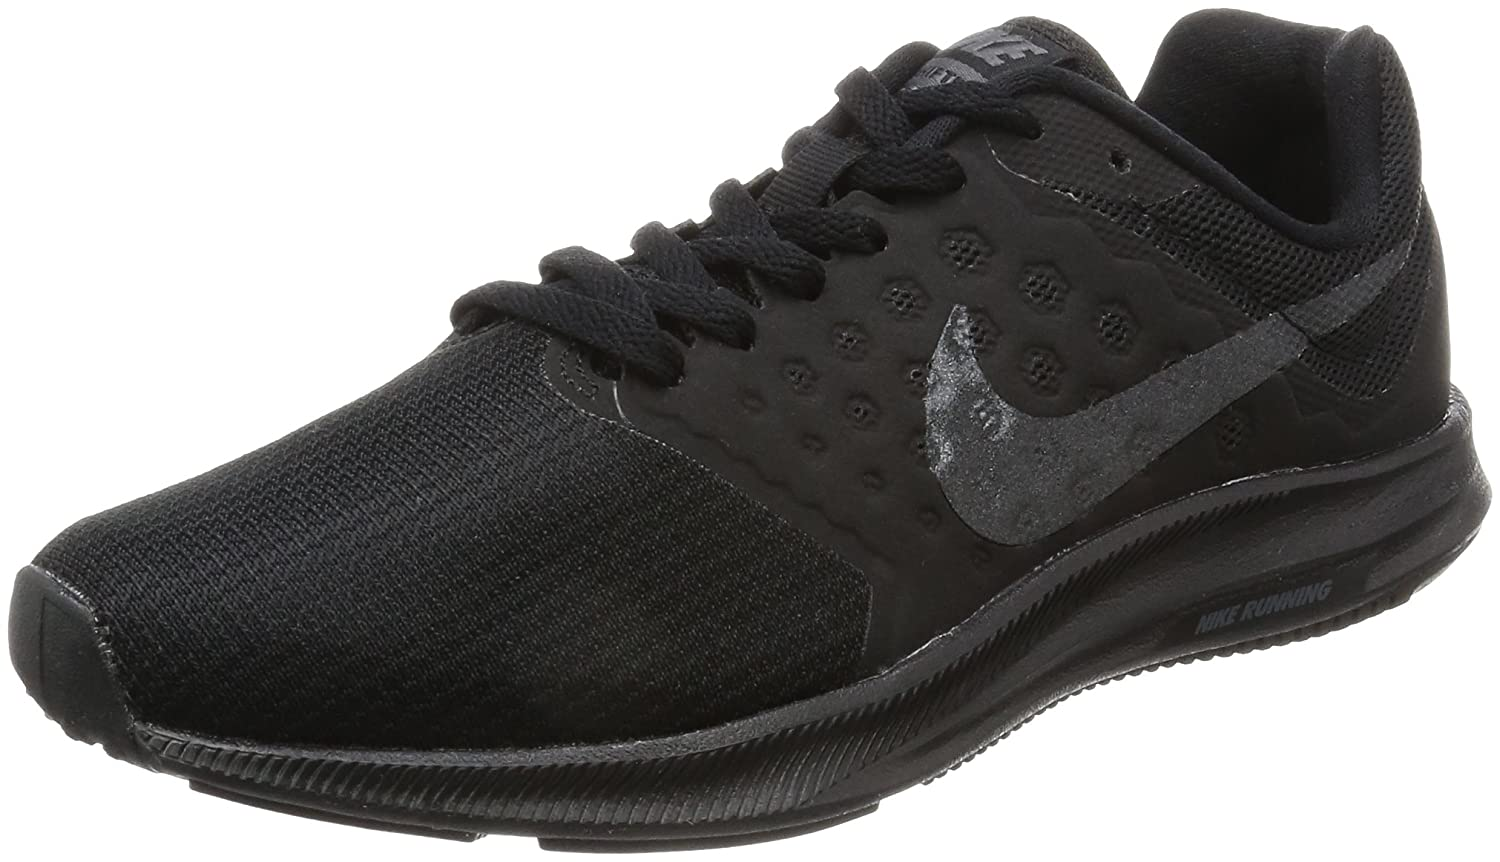 Black Mtlc Hematite Anthracite Nike Women's Downshifter 7 Running shoes